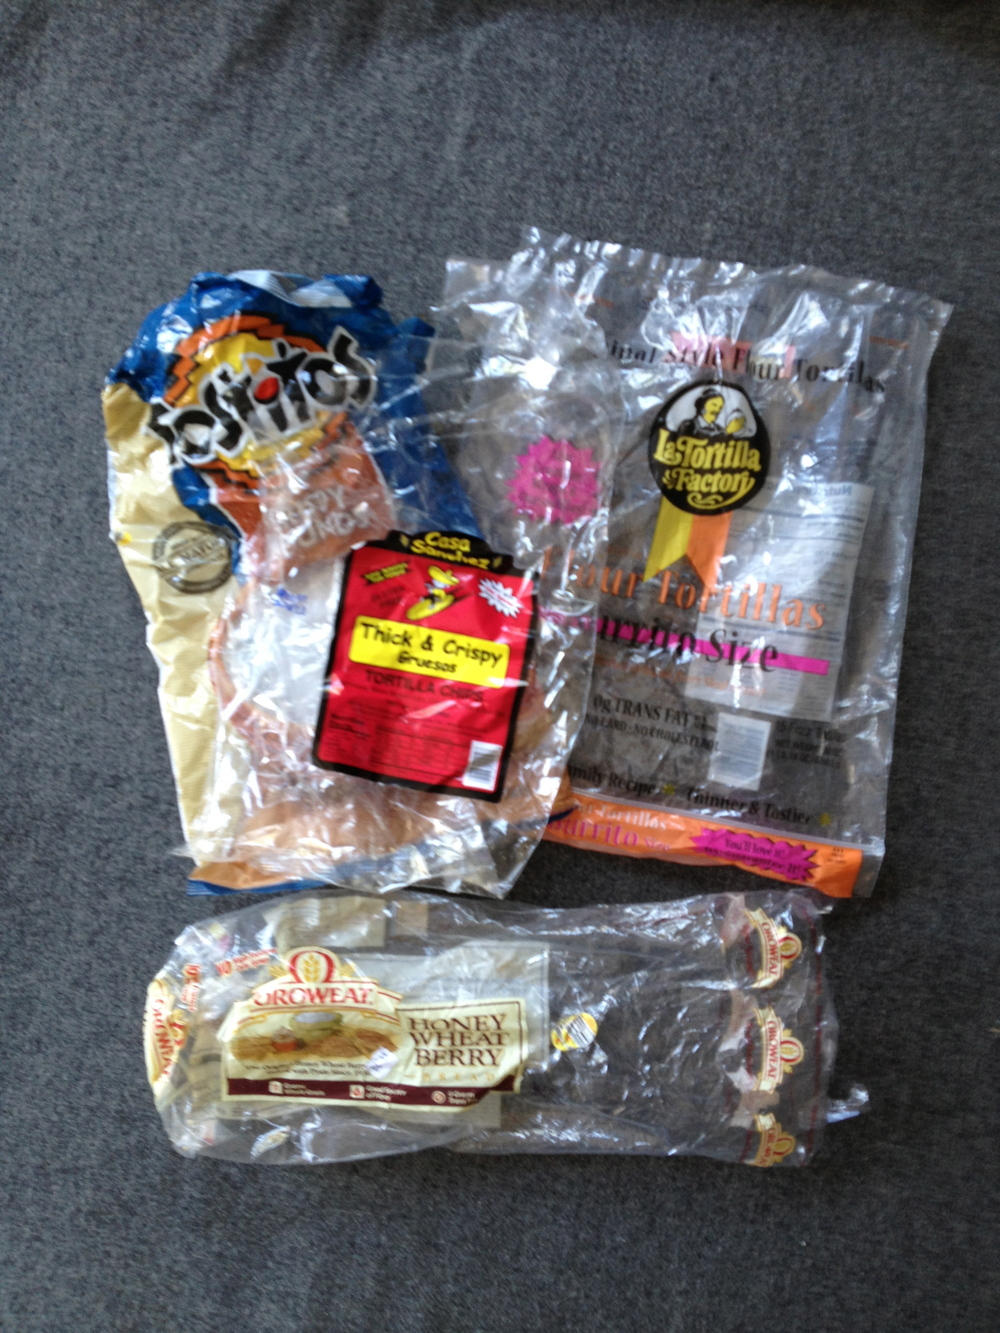 Bread, Tortilla, & Chip Bags